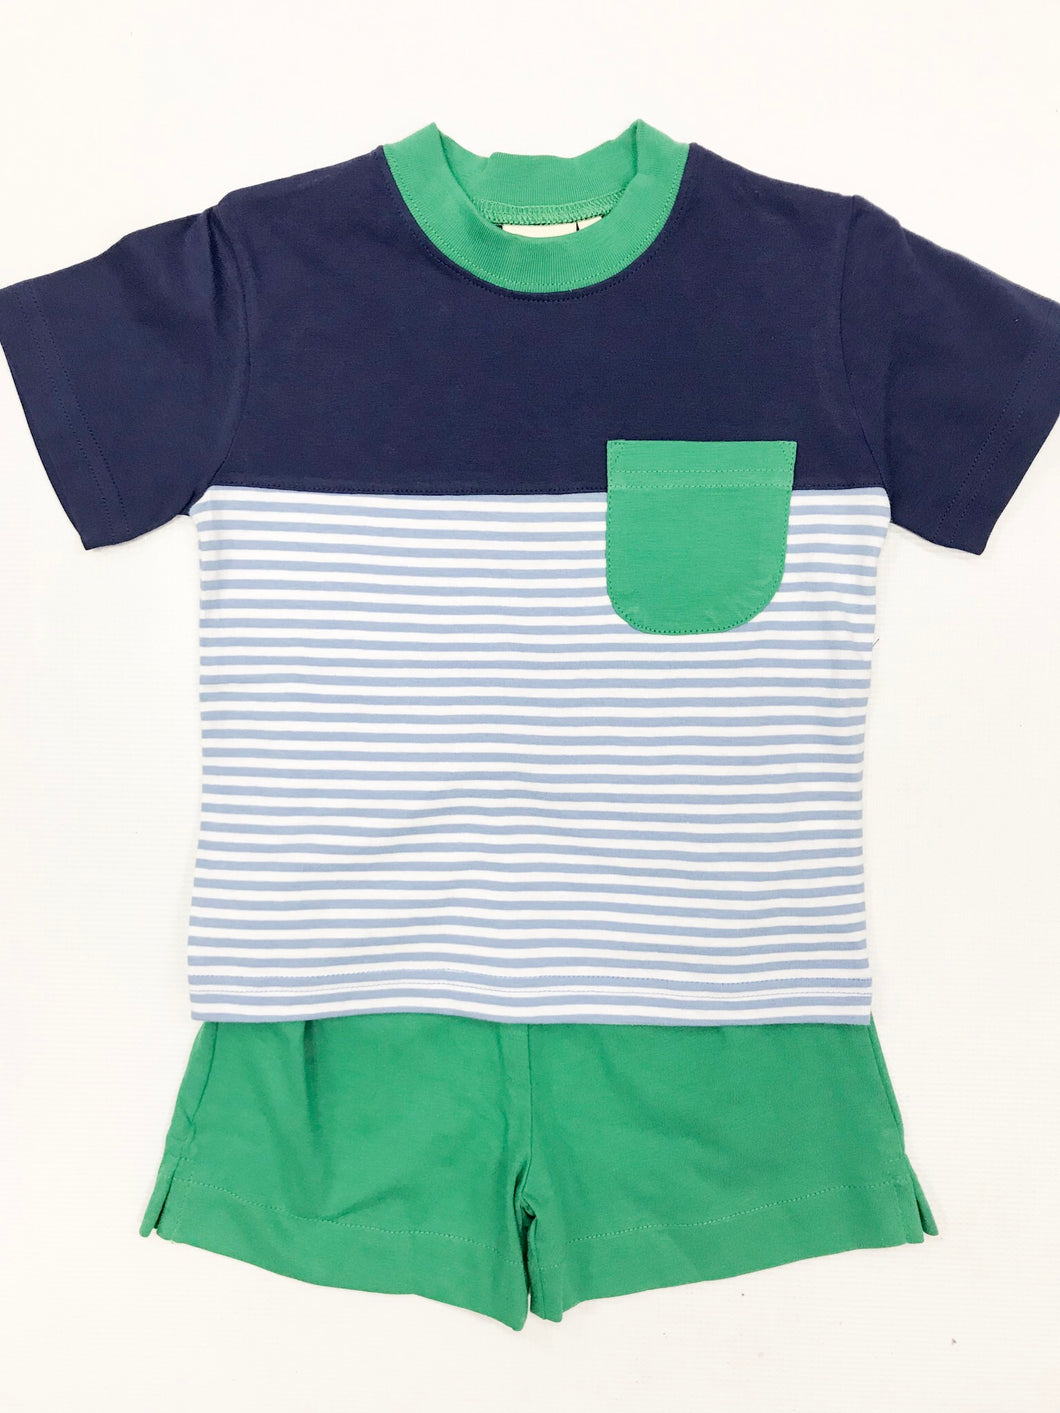 Green/Royal Pocket Short Set